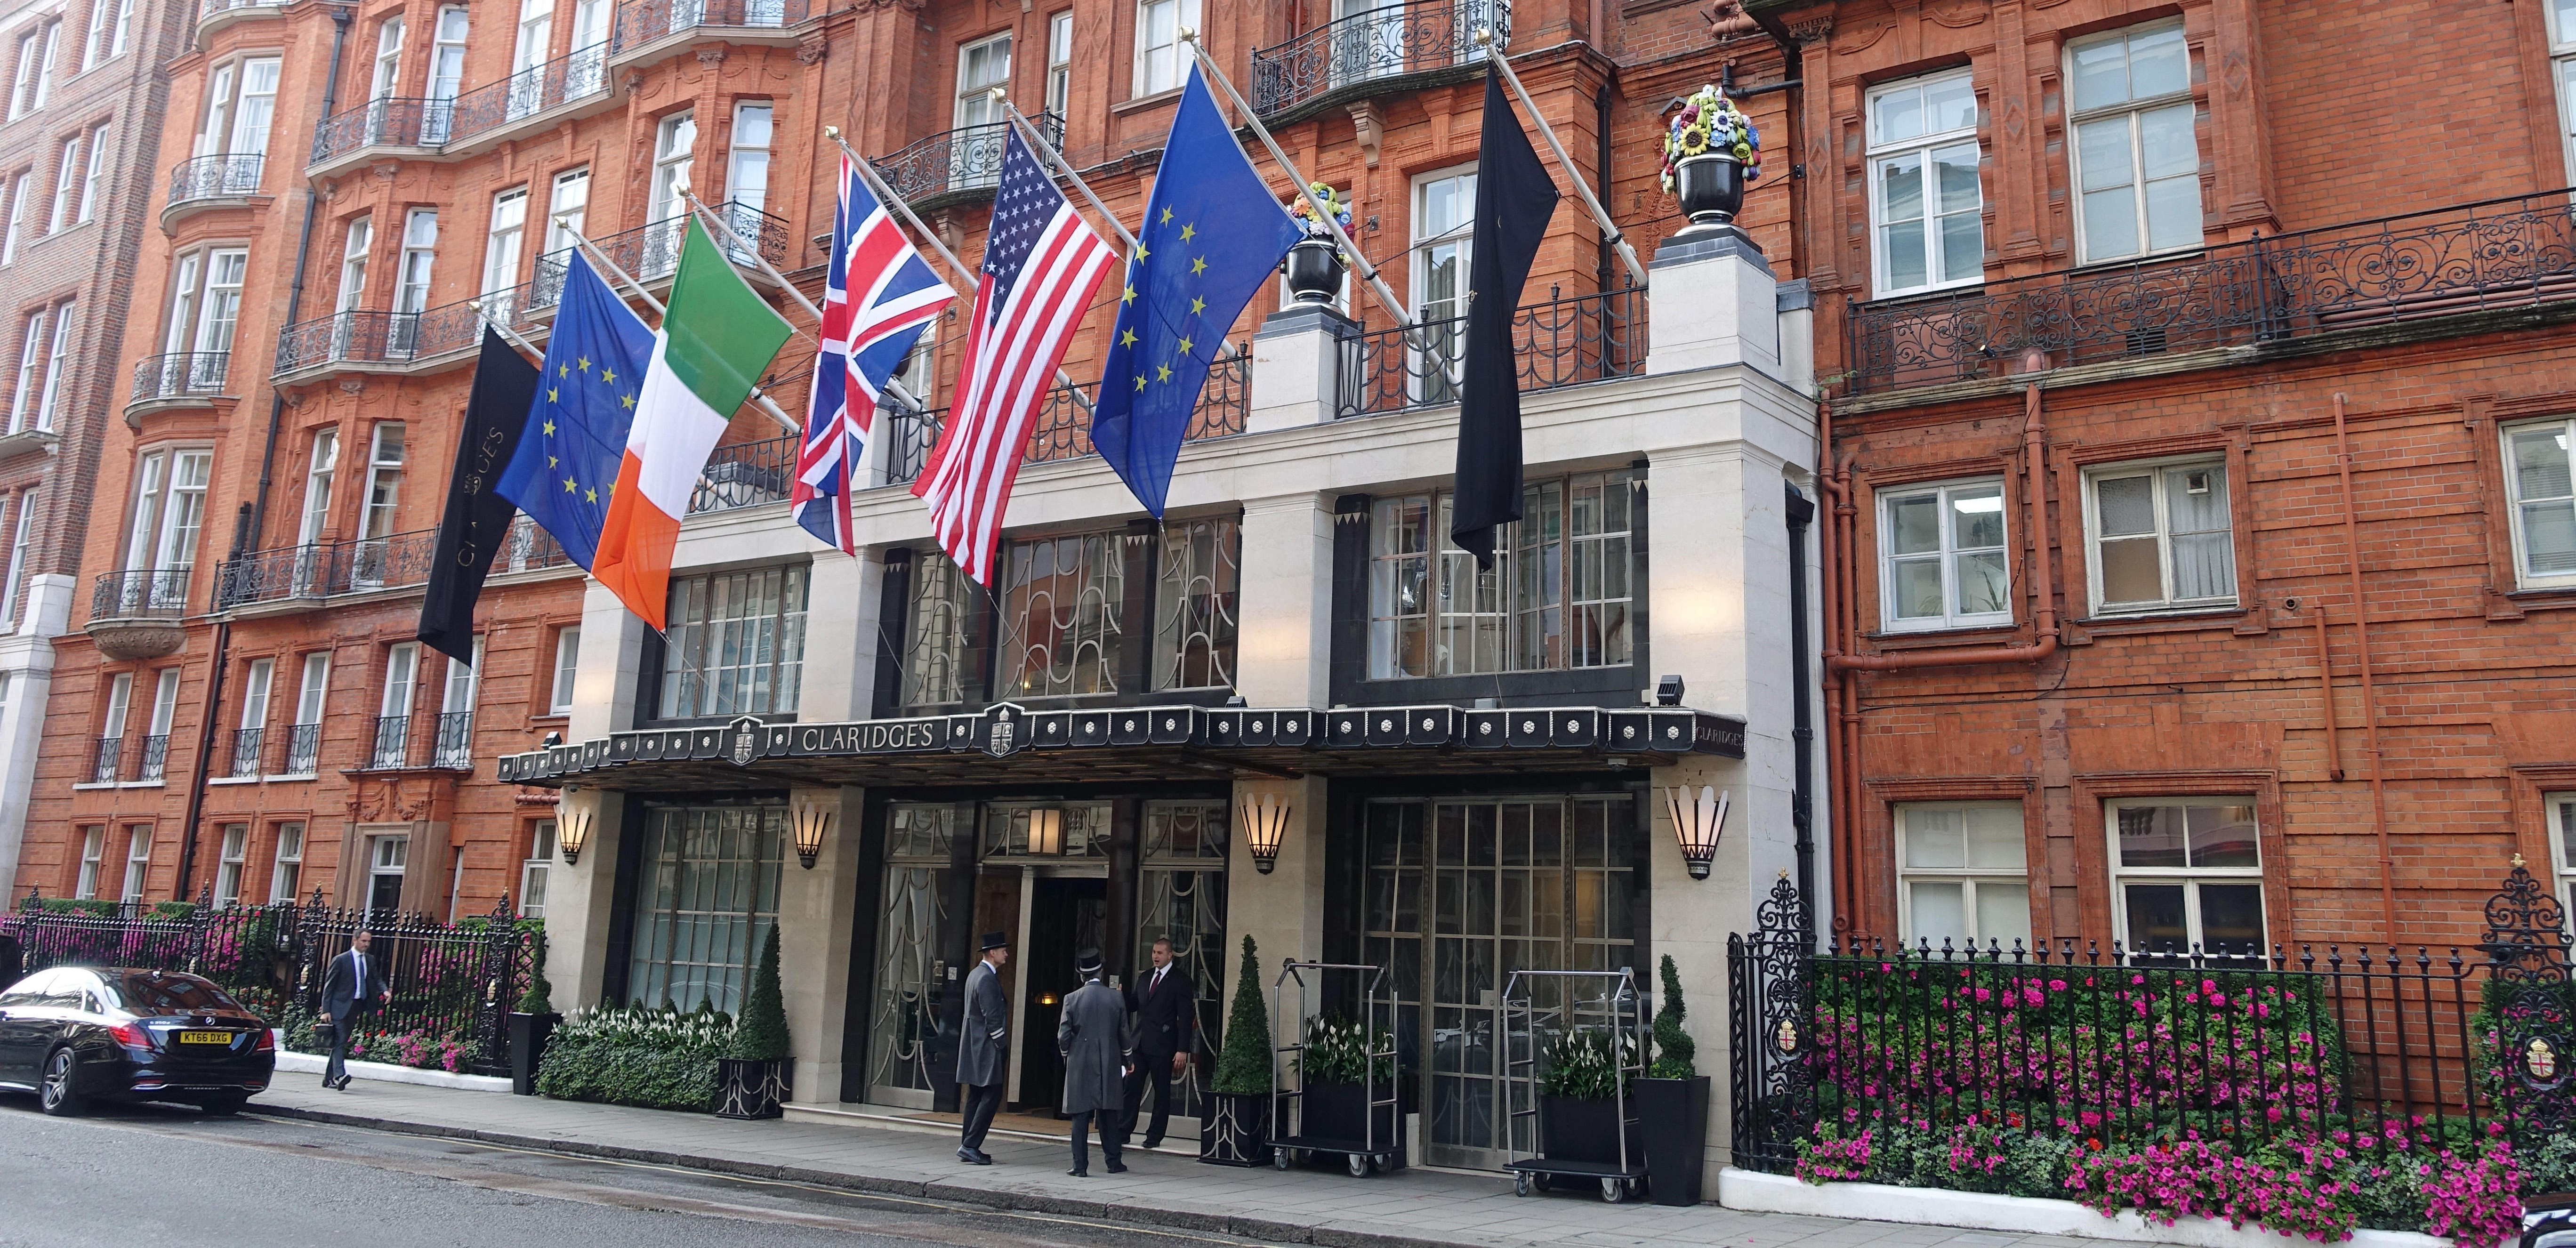 Claridge's Hotel is one of London's swankiest places to stay